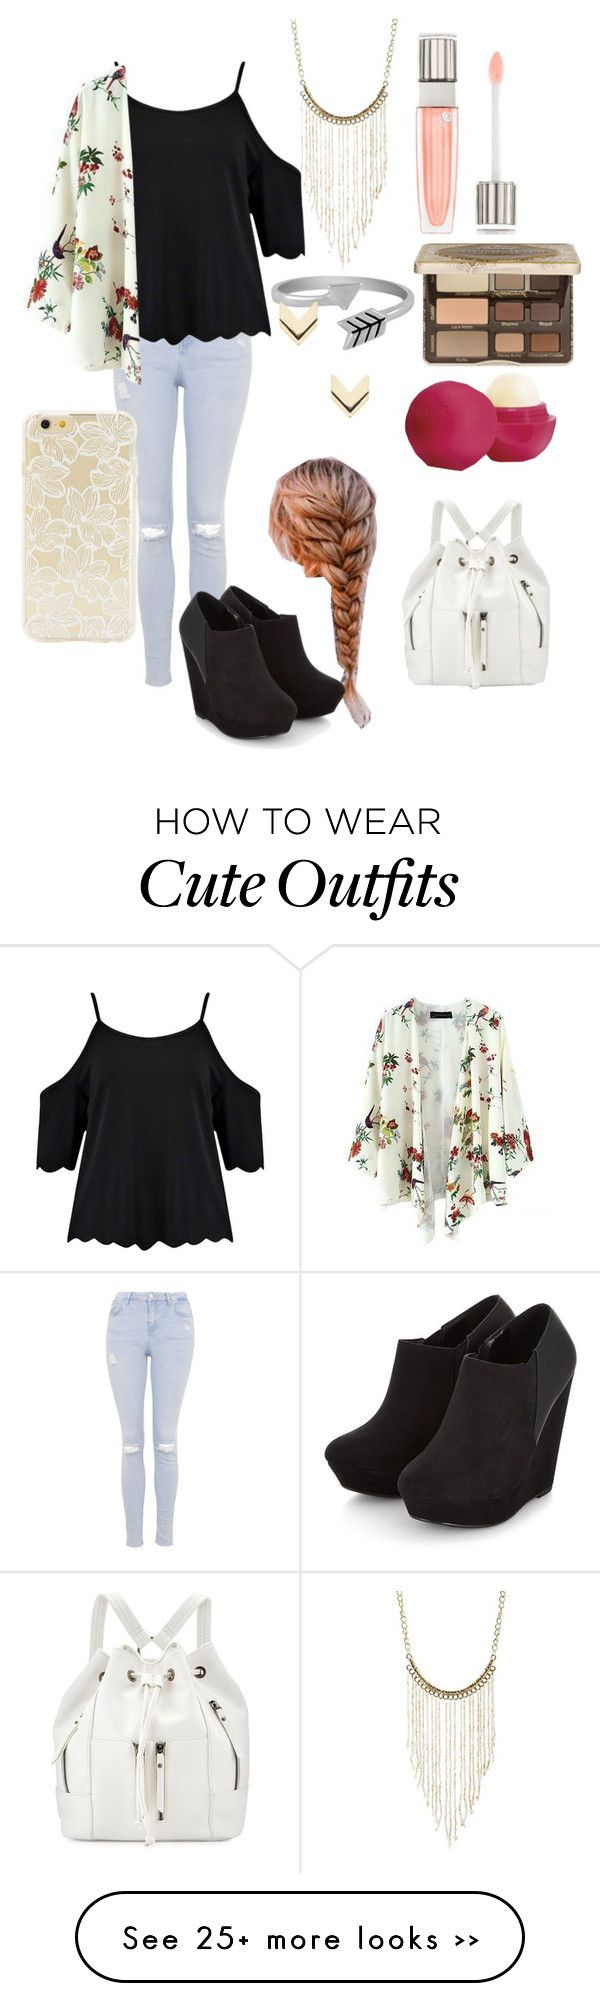 """BTS outfit ideas day 24"" by lilacbee on Polyvore featuring Topshop, Boohoo, Lancôme, Too Faced Cosmetics, Eos, Charlotte Russe, Jewel Exclusive, Neiman Marcus, Leslie Danzis and Forever 21"